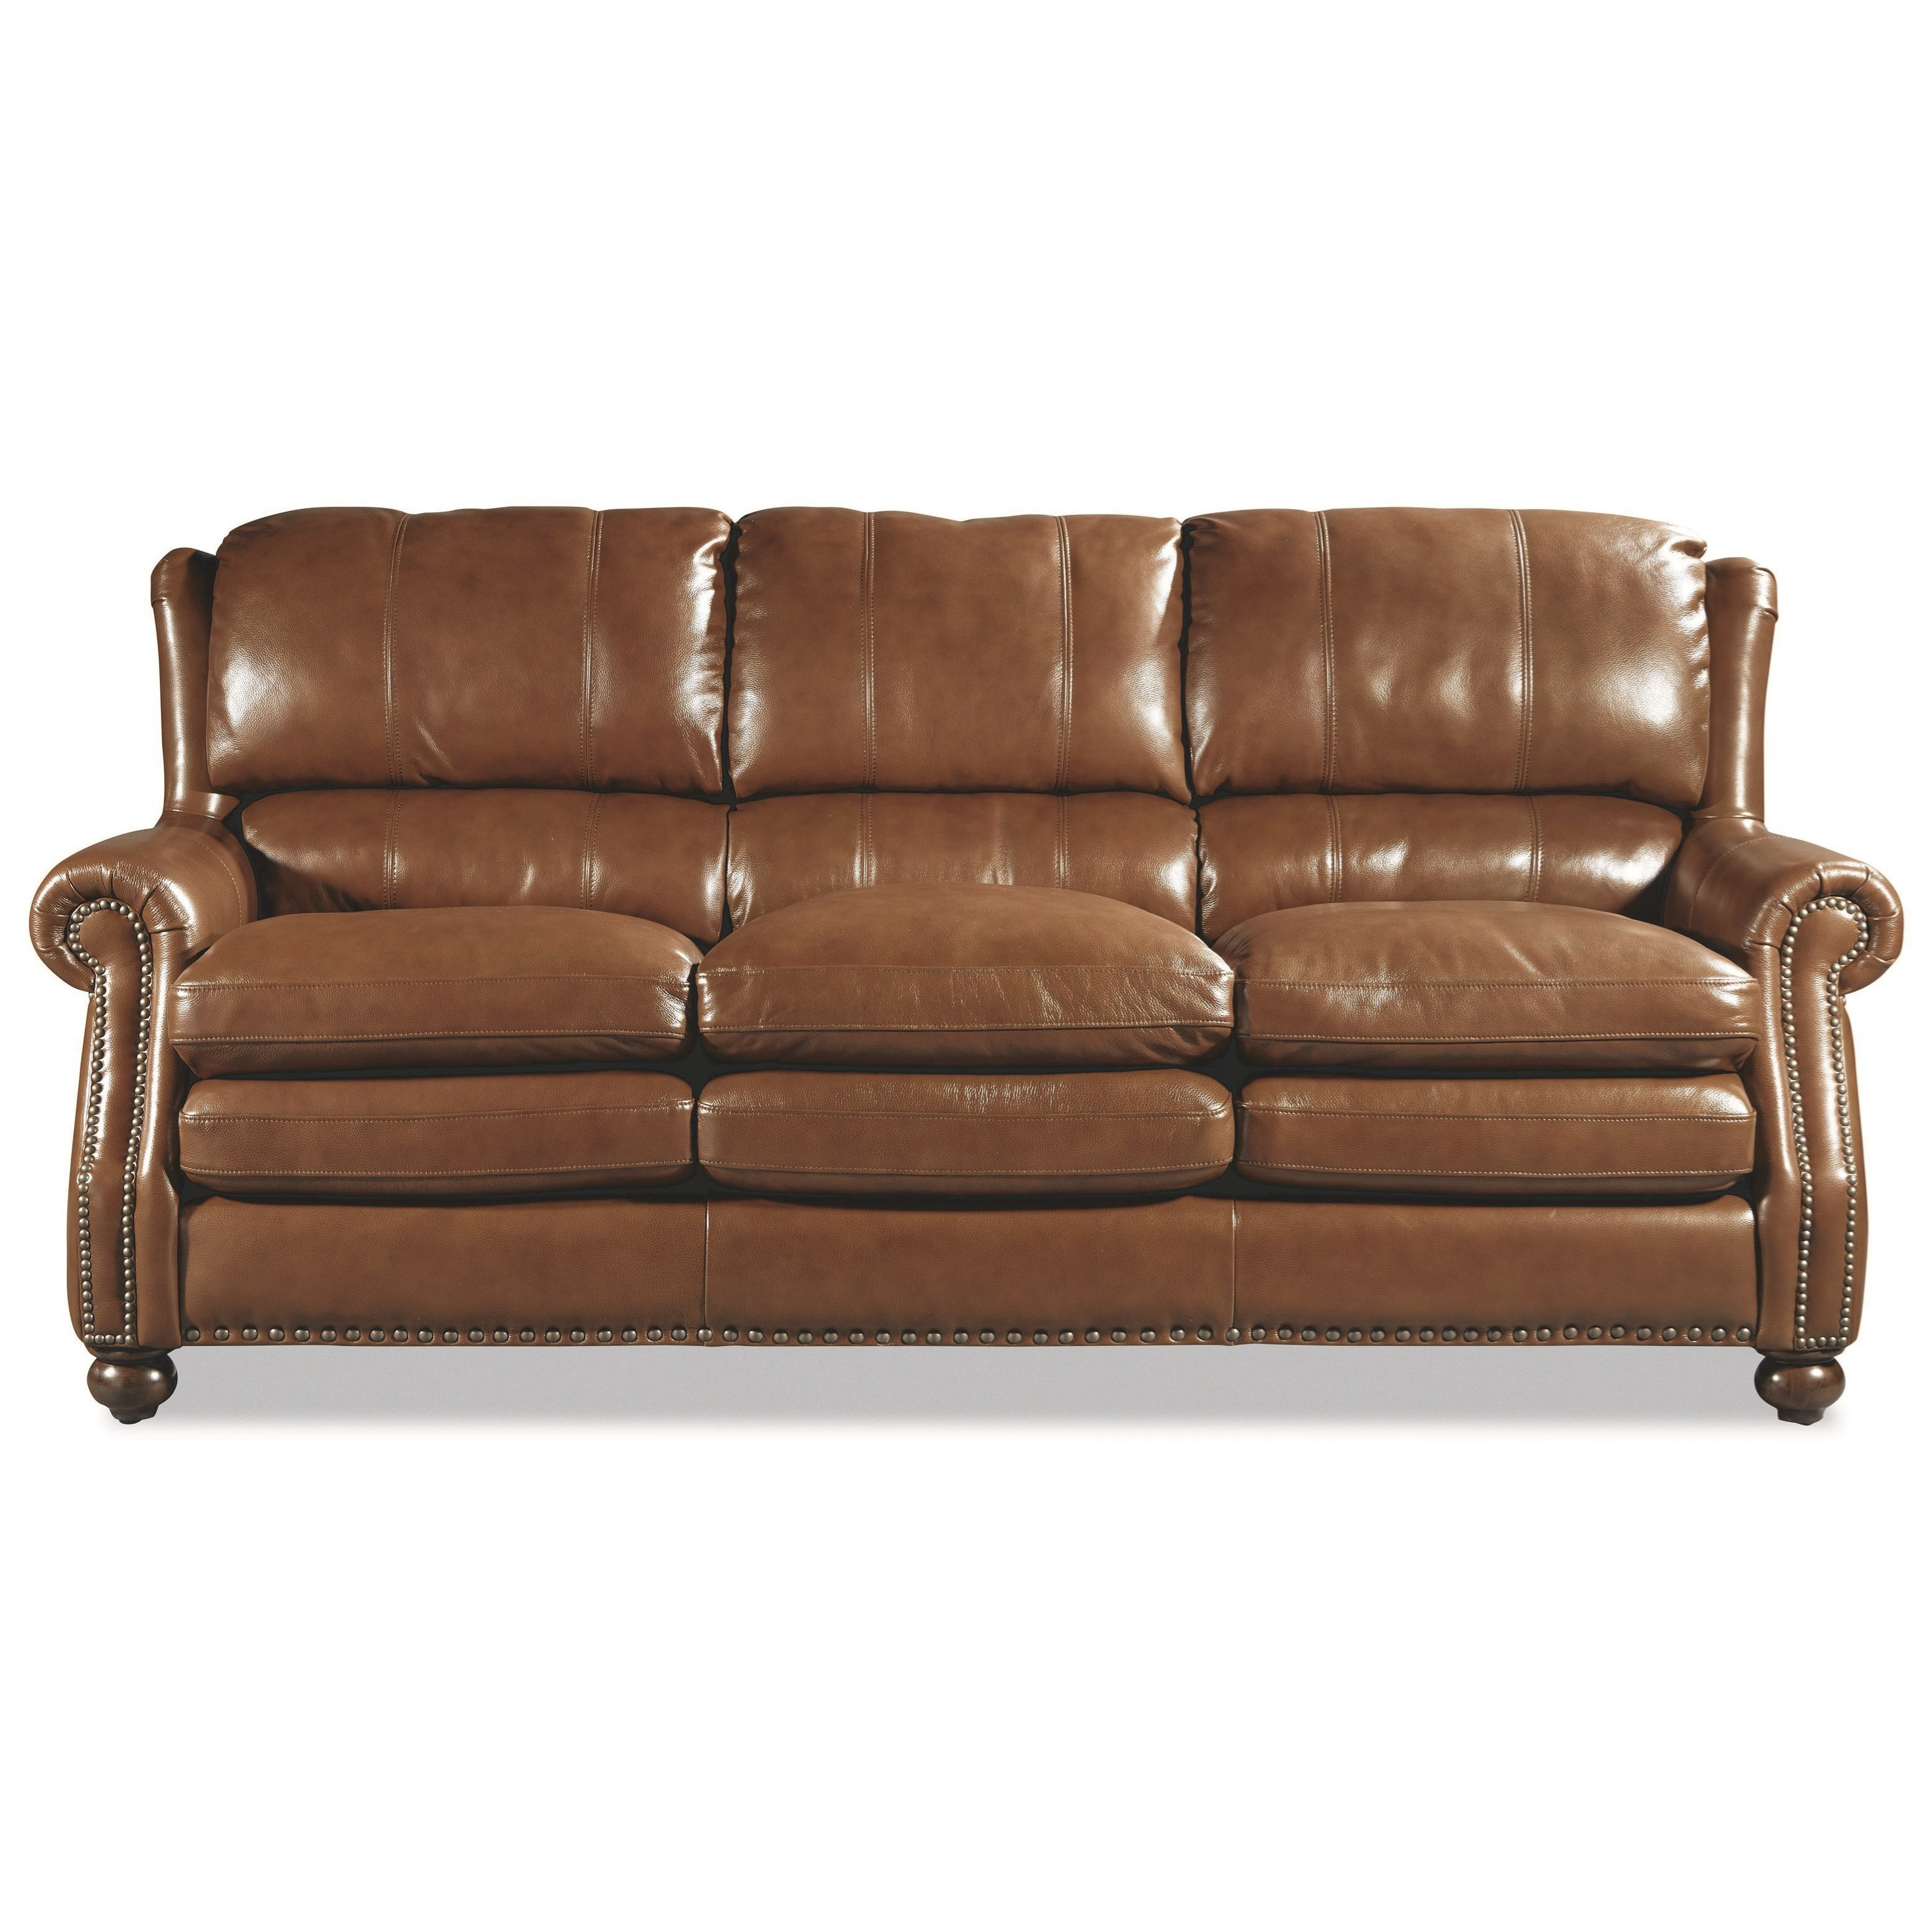 Craftmaster l1646 traditional leather sofa with bustle for Traditional leather sofas furniture